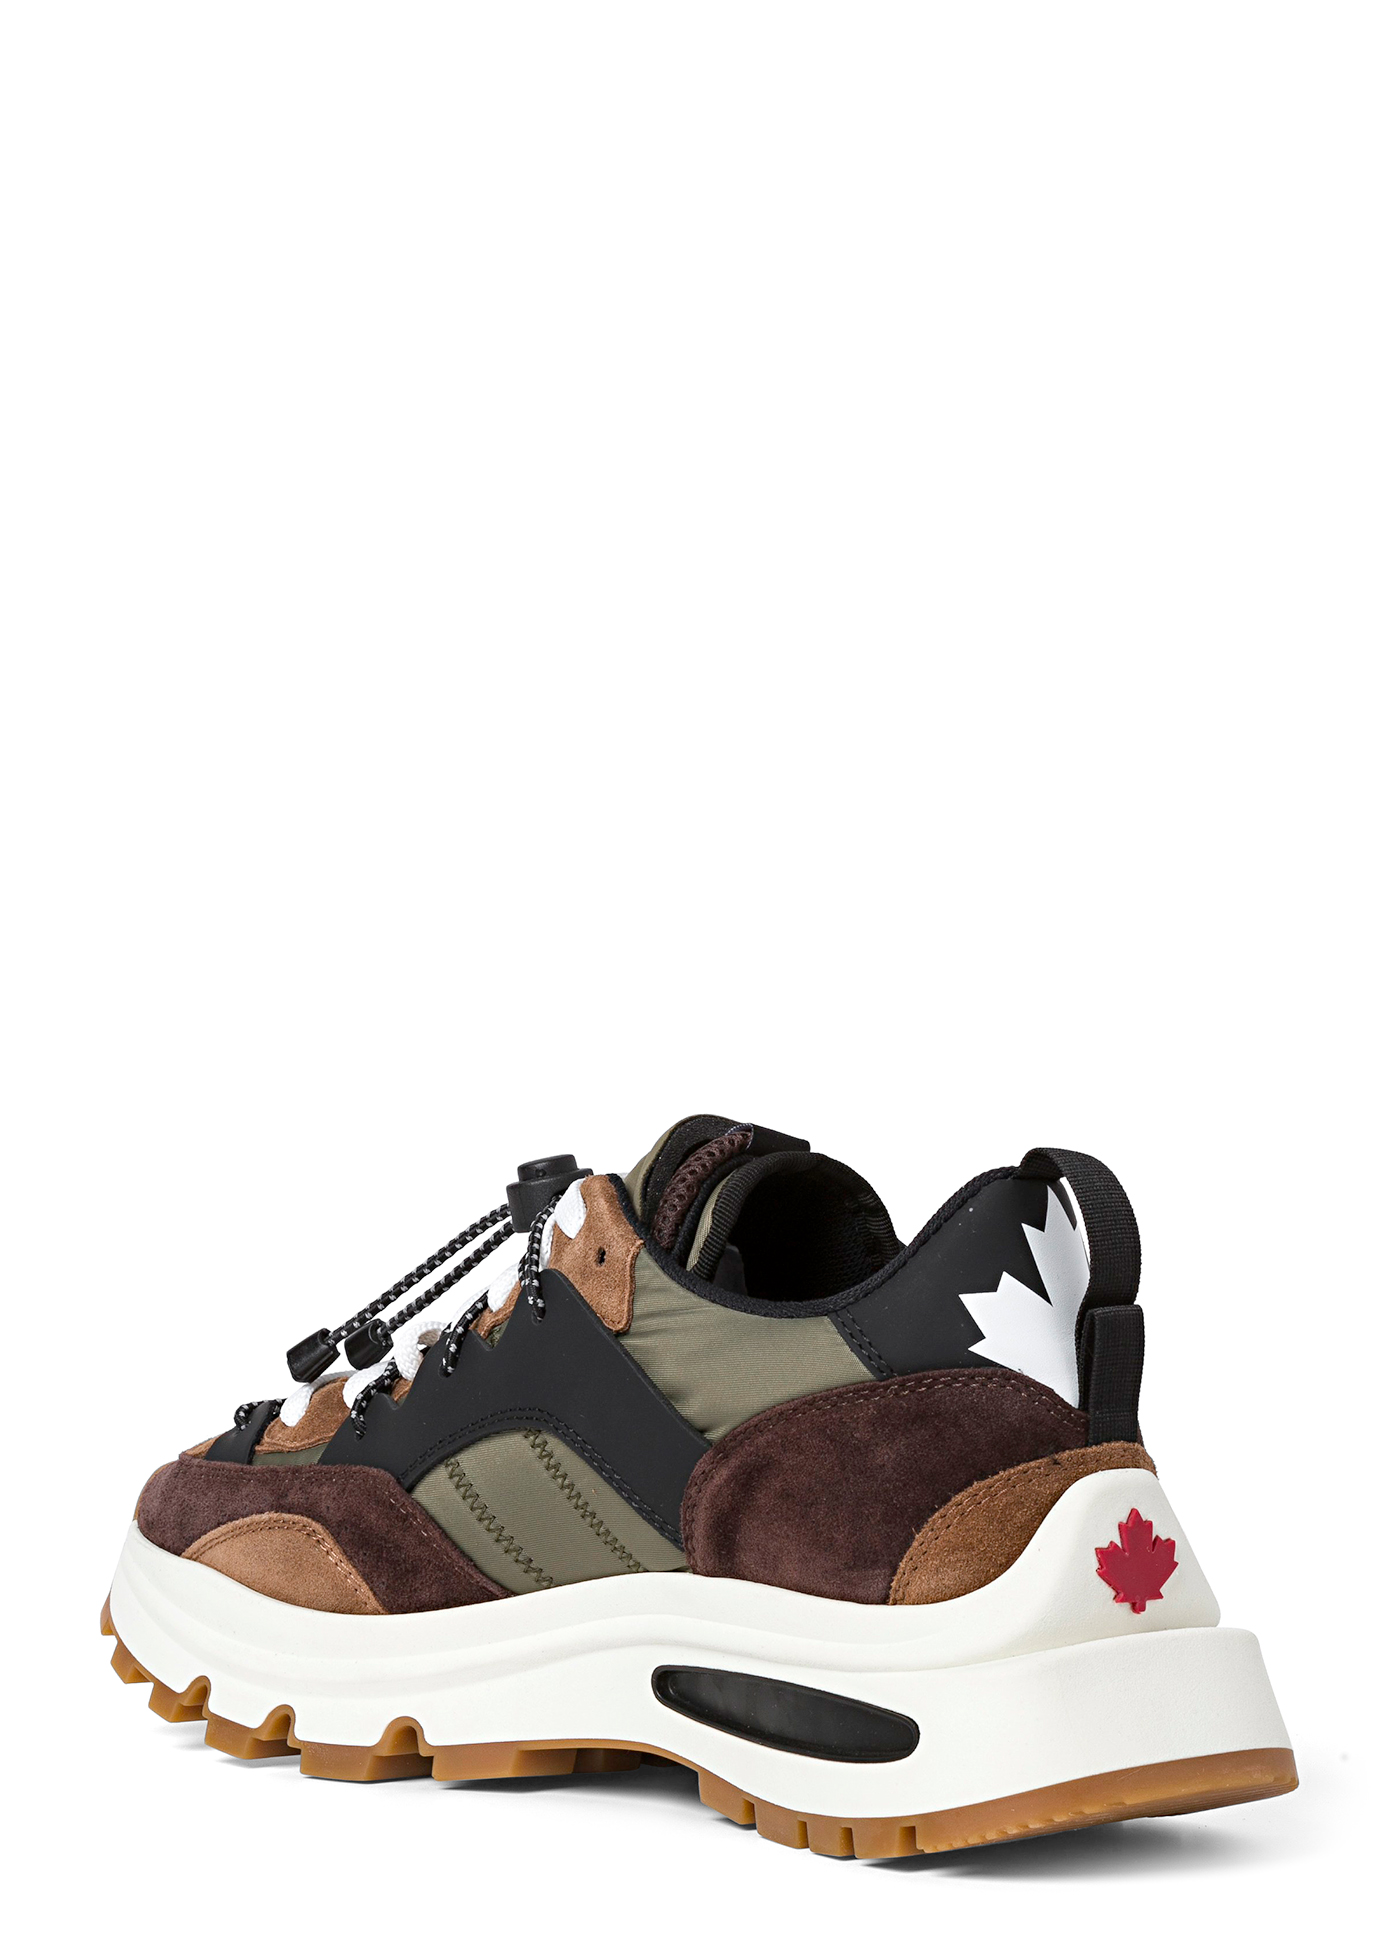 RUN DS2 3 TABS 1.303,40 SNEAKERS image number 2